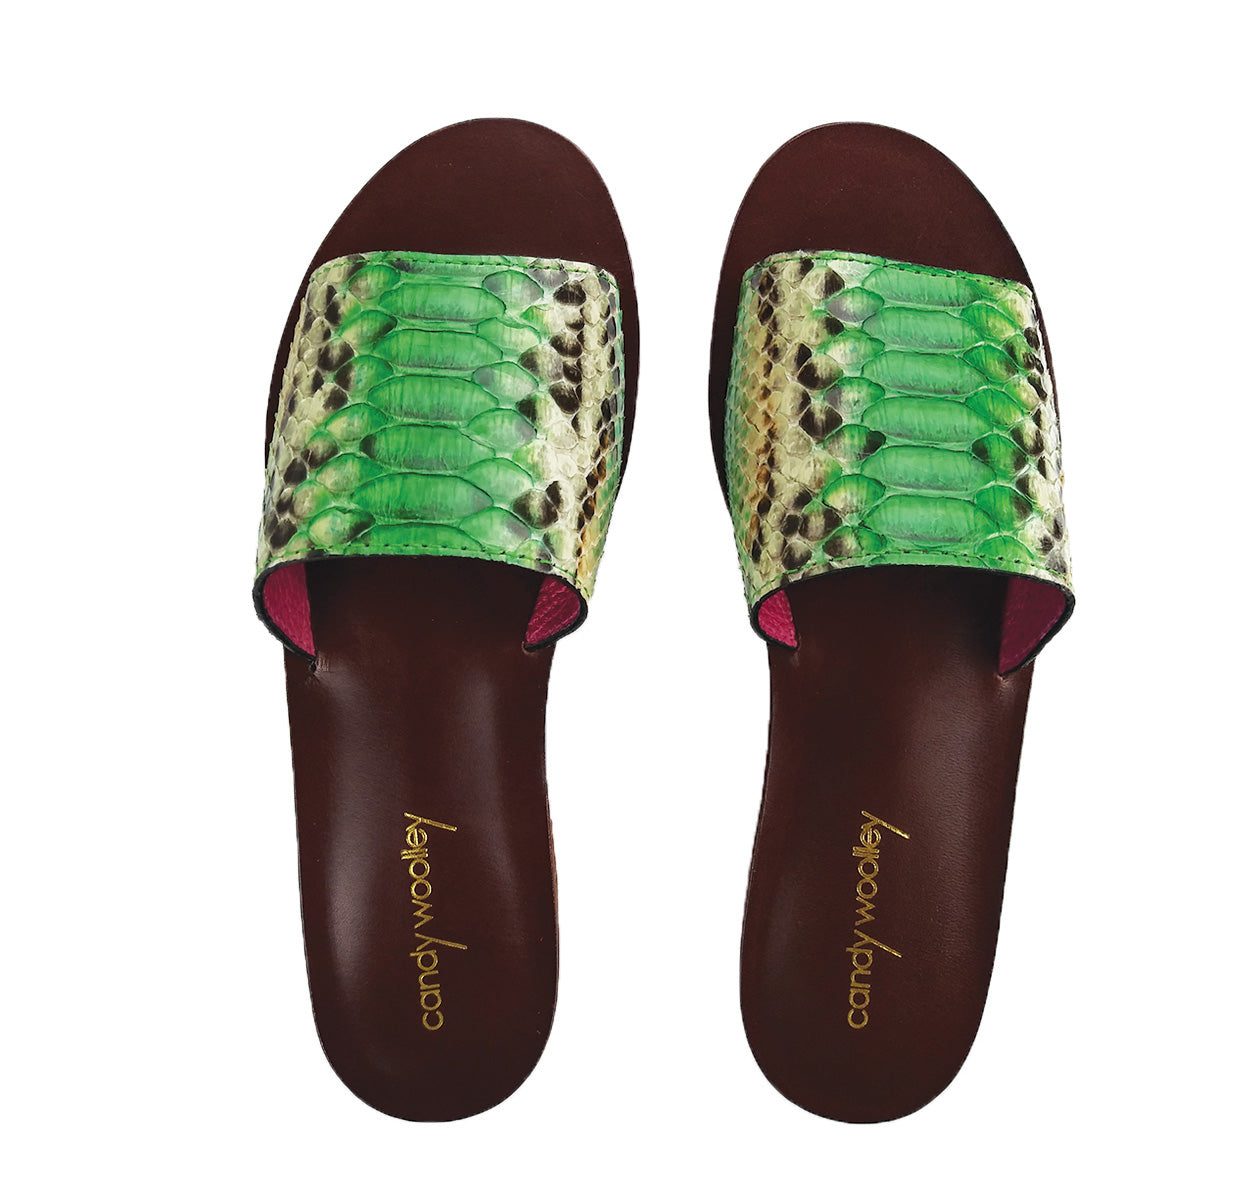 LAST ONE! Size 7. Genuine Python, Green & Cream Flat Slide Sandals. [NON-SLIP & SOLE PROTECTOR]